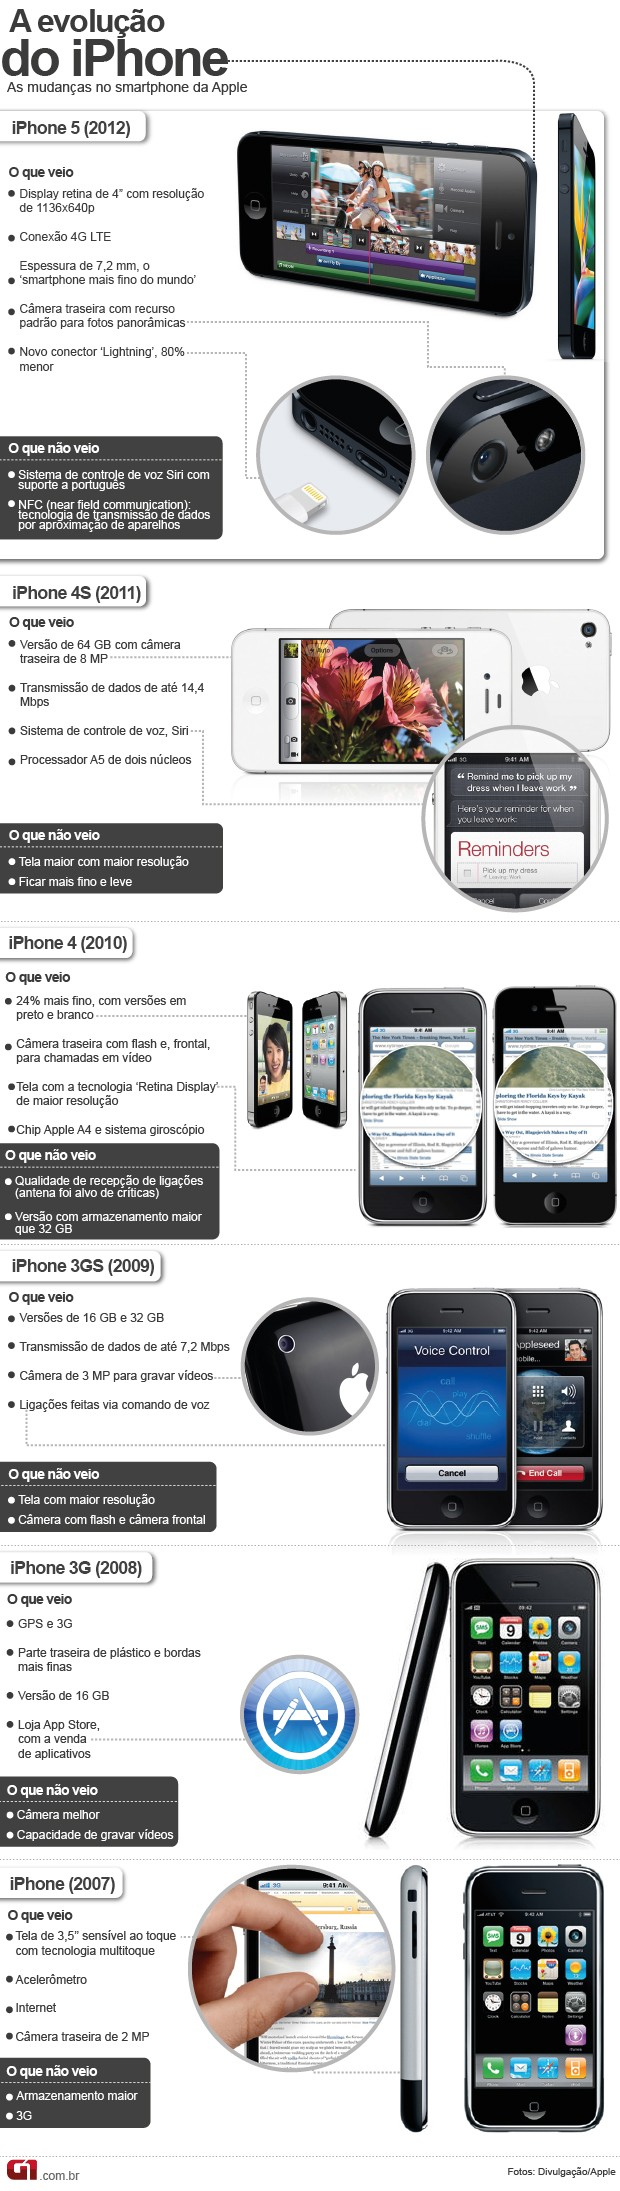 Hist&#243;ria do iPhone (Foto: Arte G1)